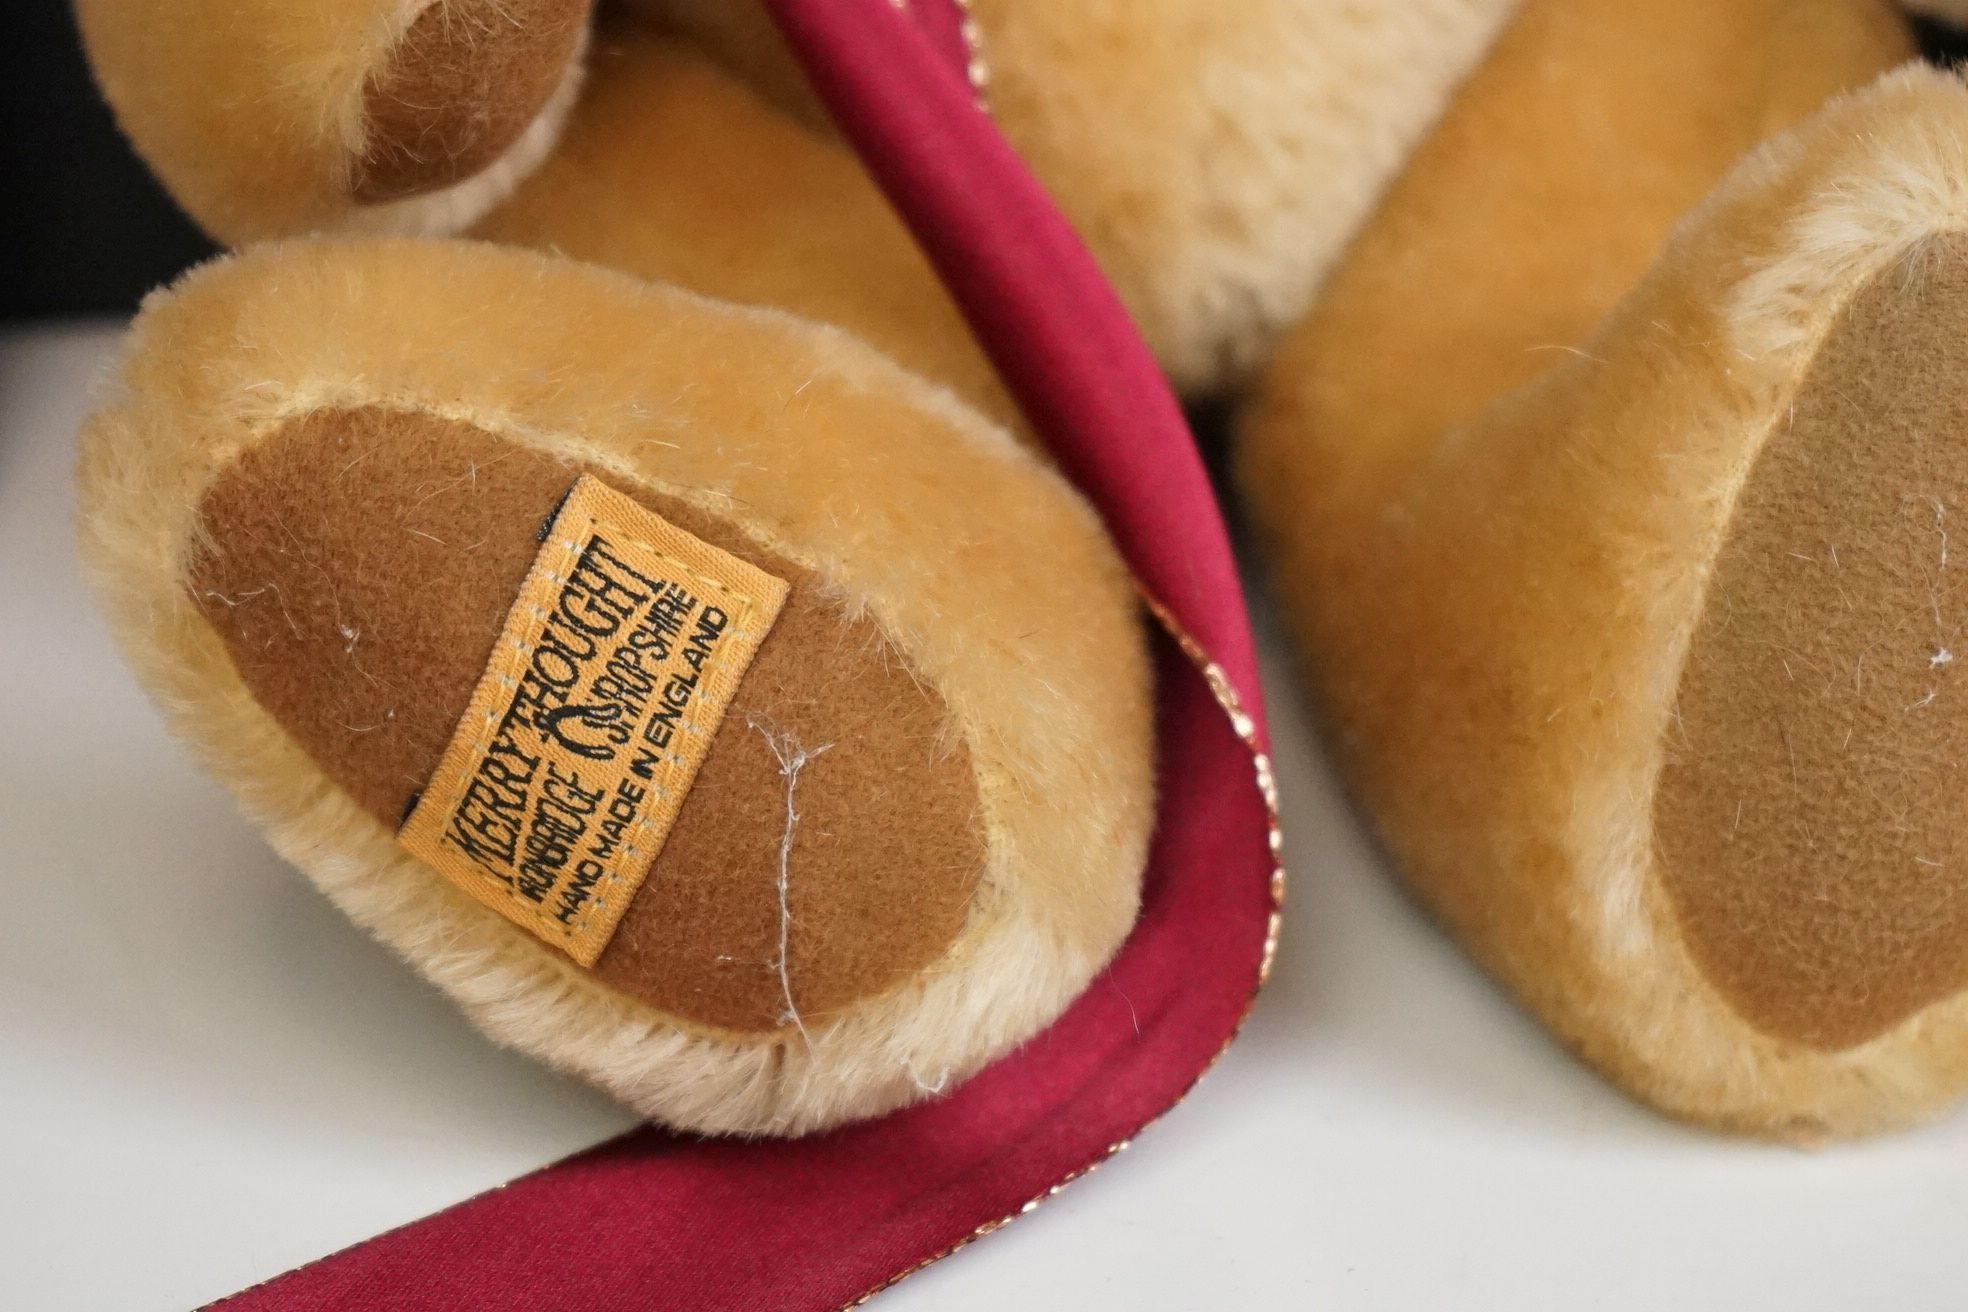 Steiff Teddy Bear, Two Merrythoughts Teddy Bears with Burgundy & Gold Ribbons to neck plus one - Image 6 of 8